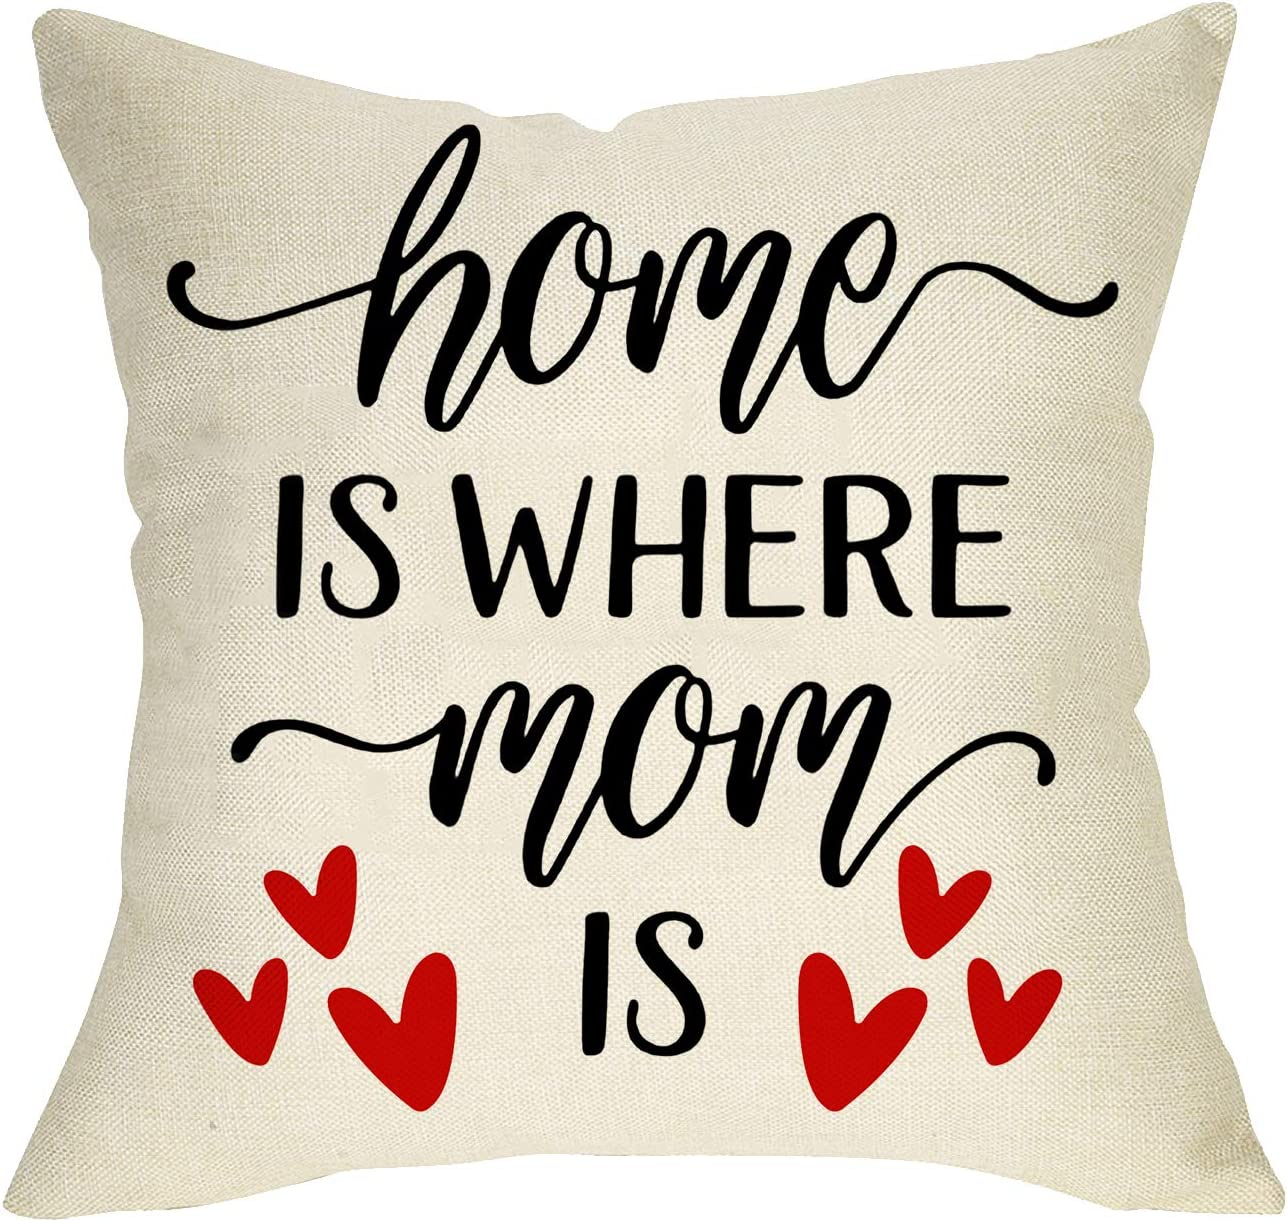 FBCOO Home is Where Mom is Decorative Throw Pillow Cover, Farmhouse Quote Cushion Case Love Heart Mother's Day Birthday Gift, Home Decorations Square Pillowcase Decor 18 x 18 Inch Cotton Linen